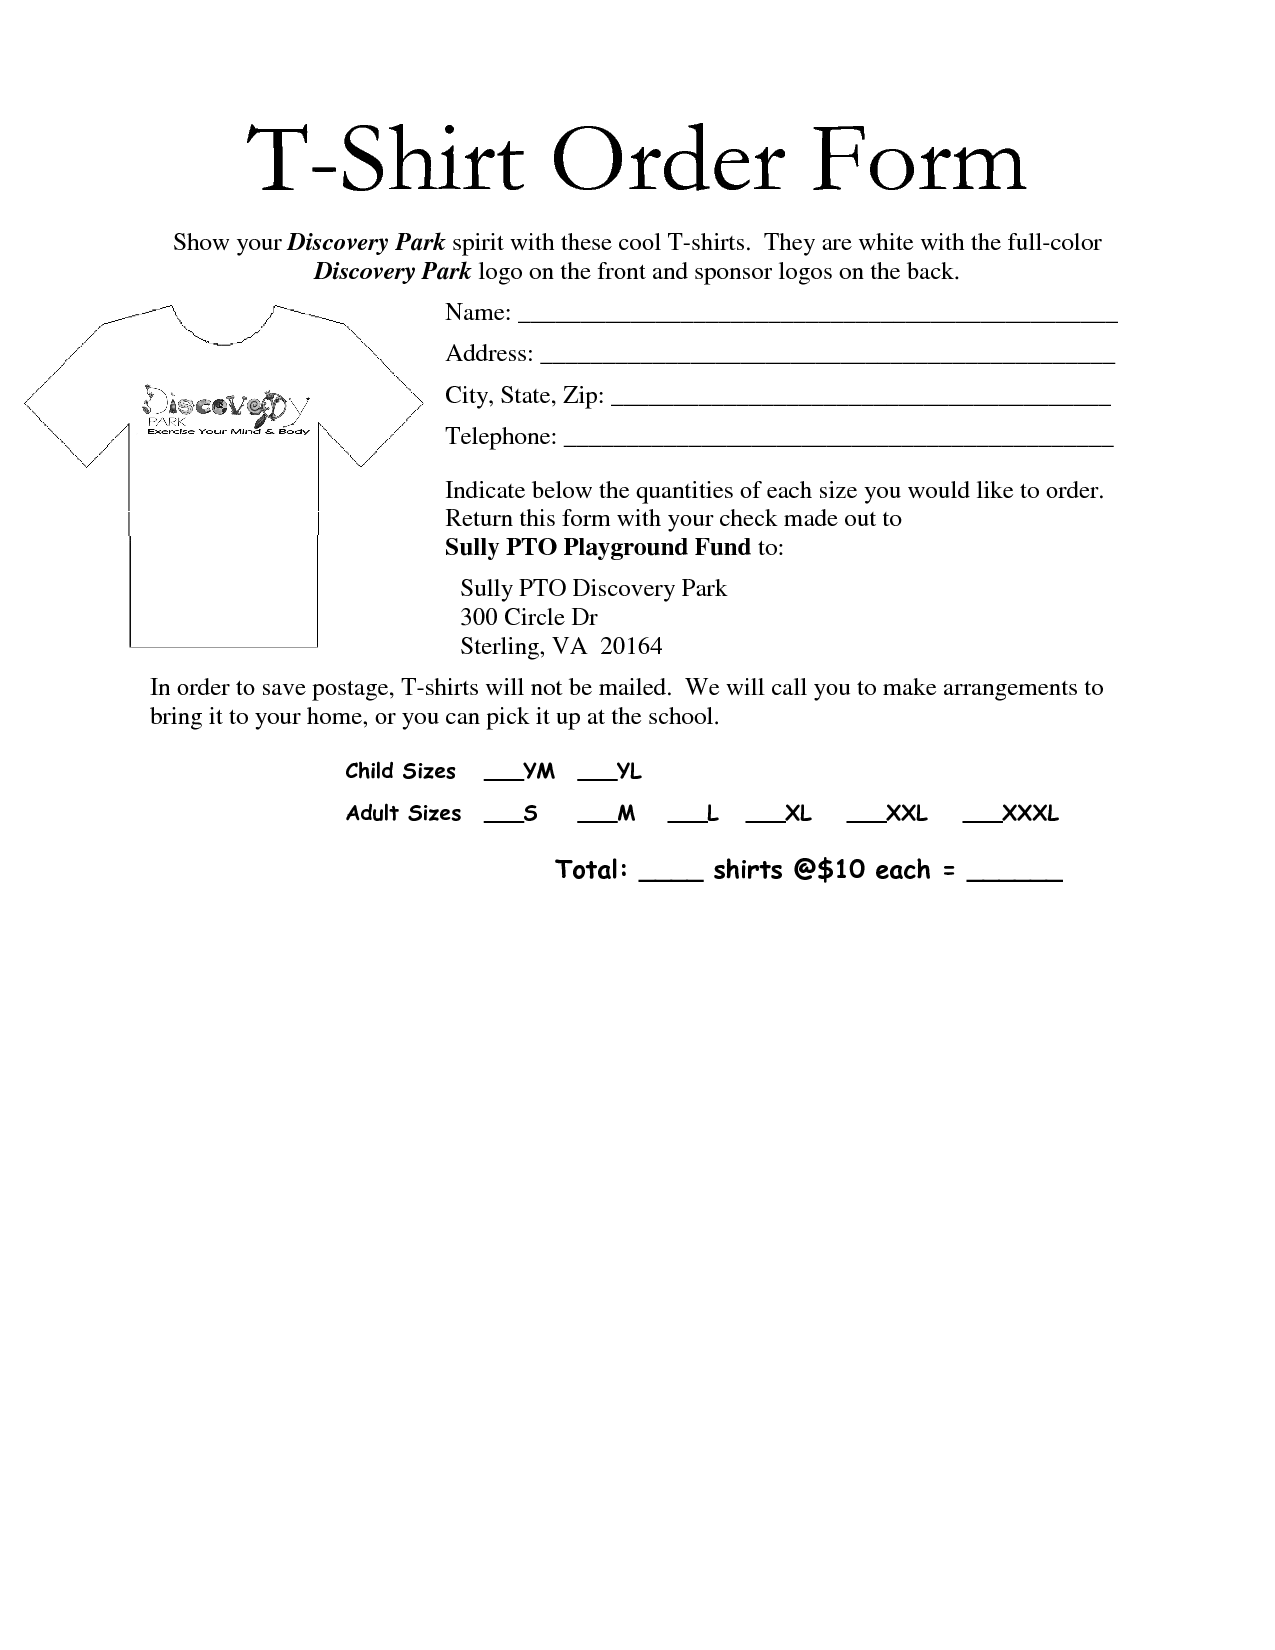 t shirt order forms templates 35 Awesome t-shirt order form template free images | Projects to Try ...